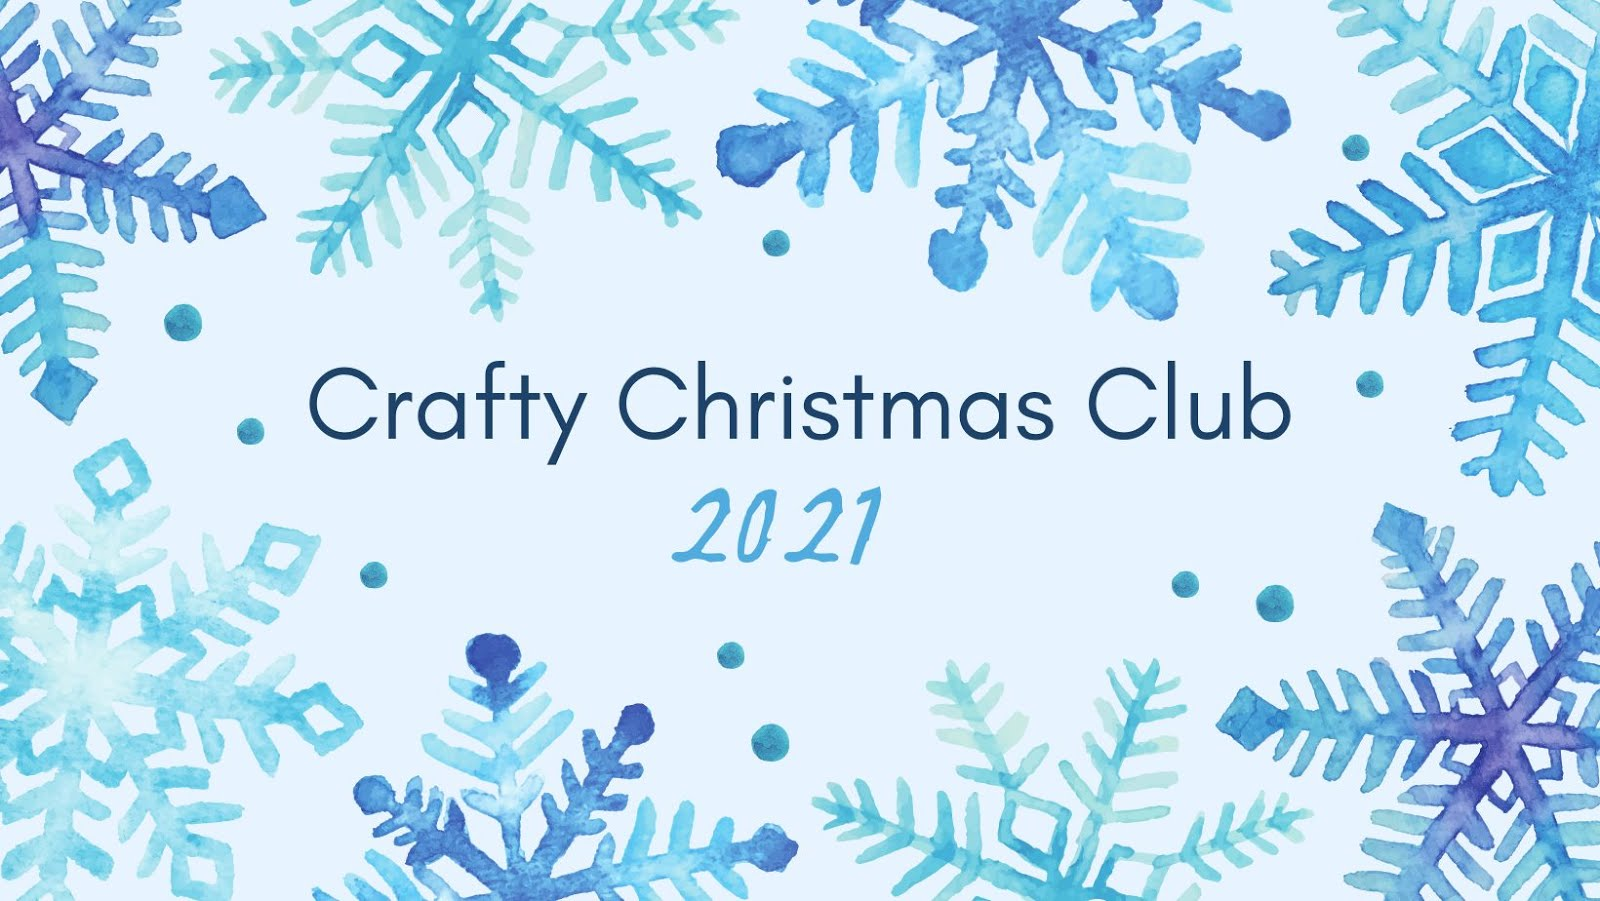 Crafty Christmas Club